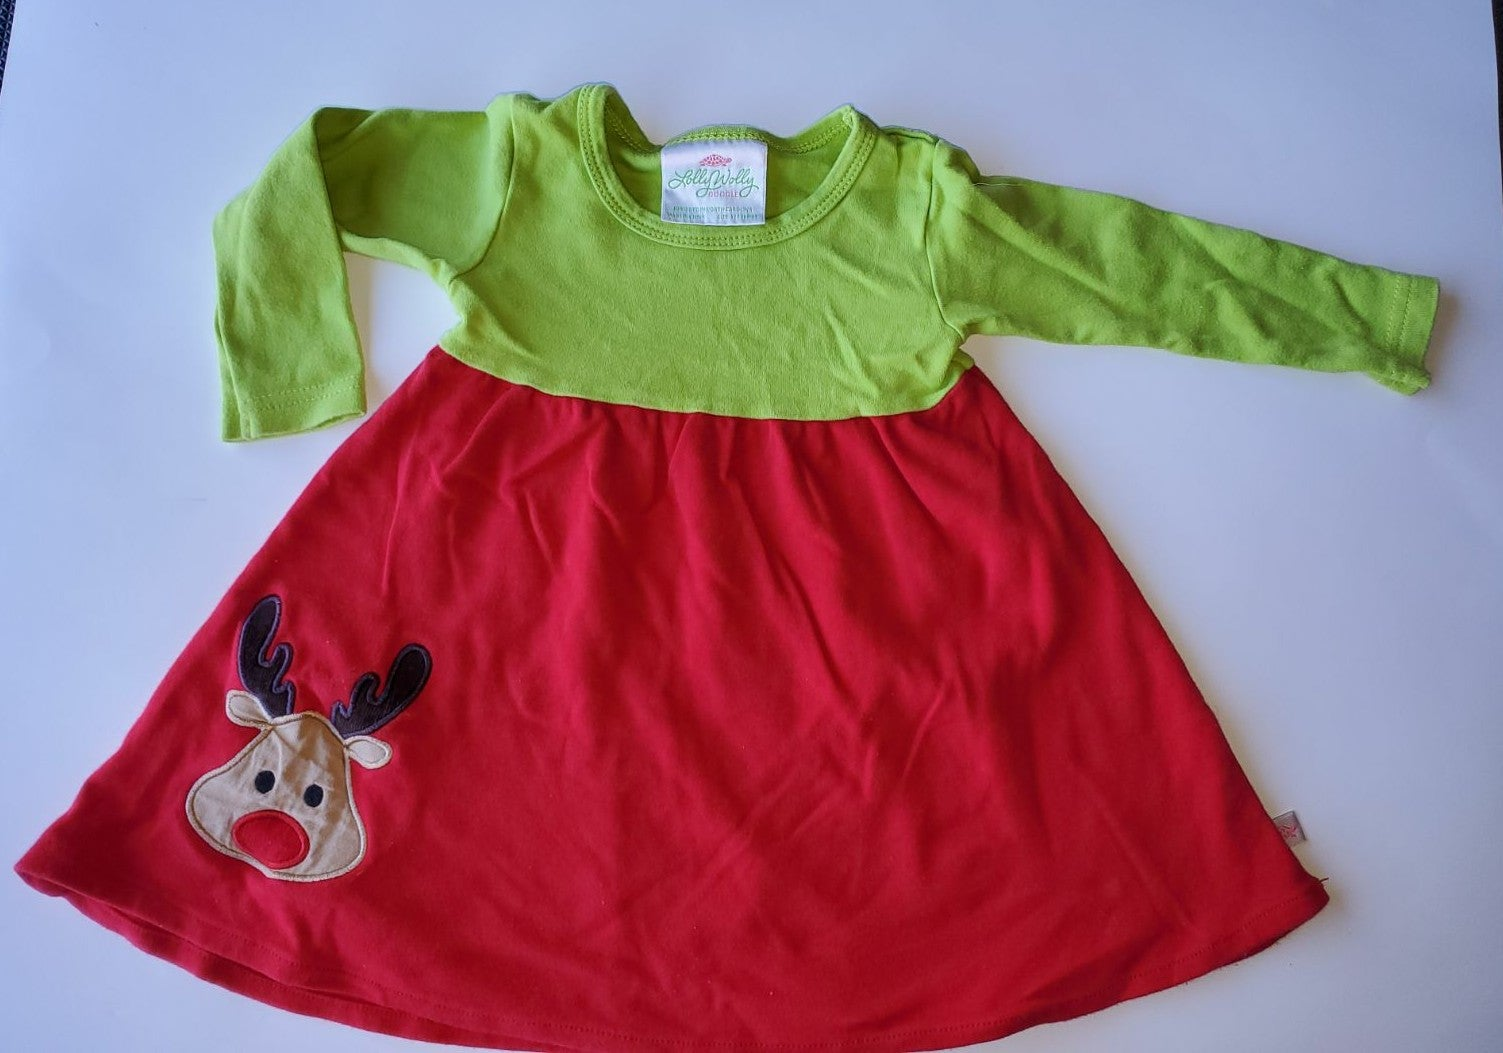 Lolly wolly doodle Reindeer dress red an